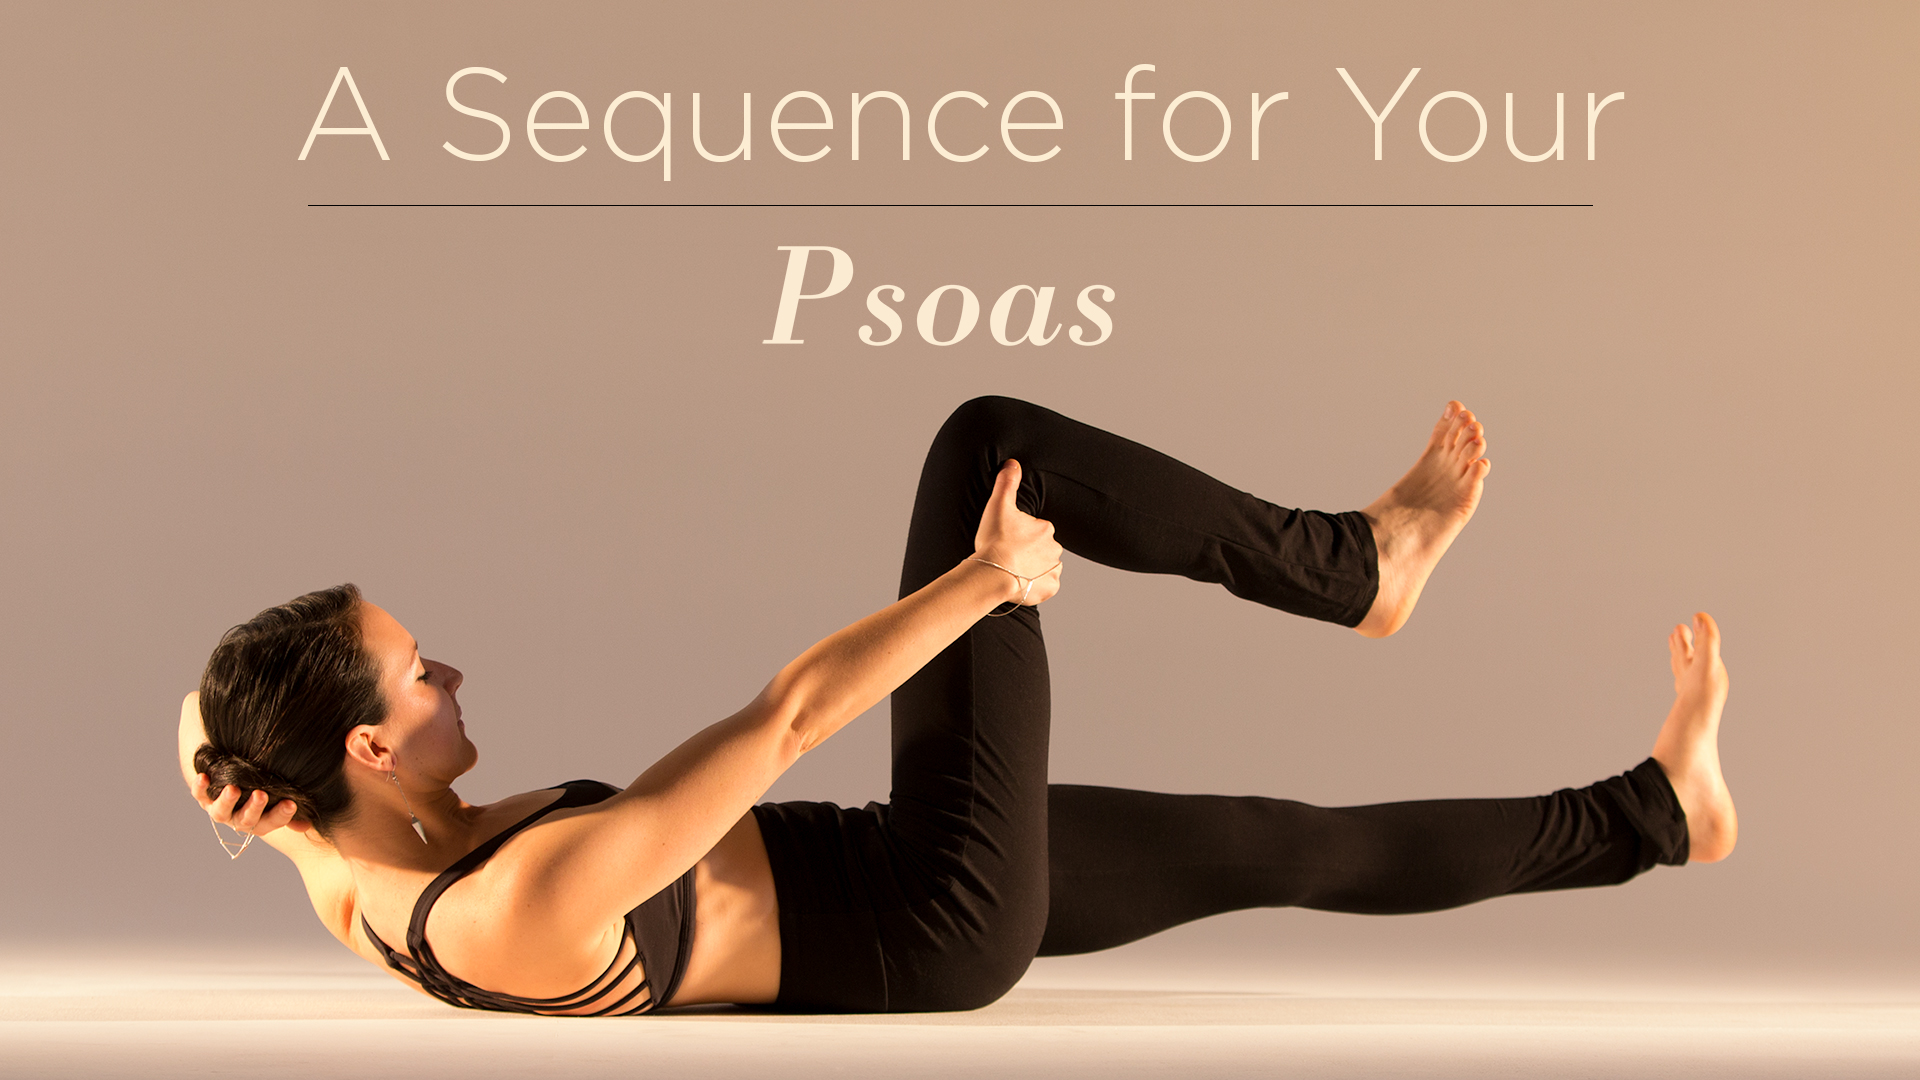 A Sequence for Your Psoas